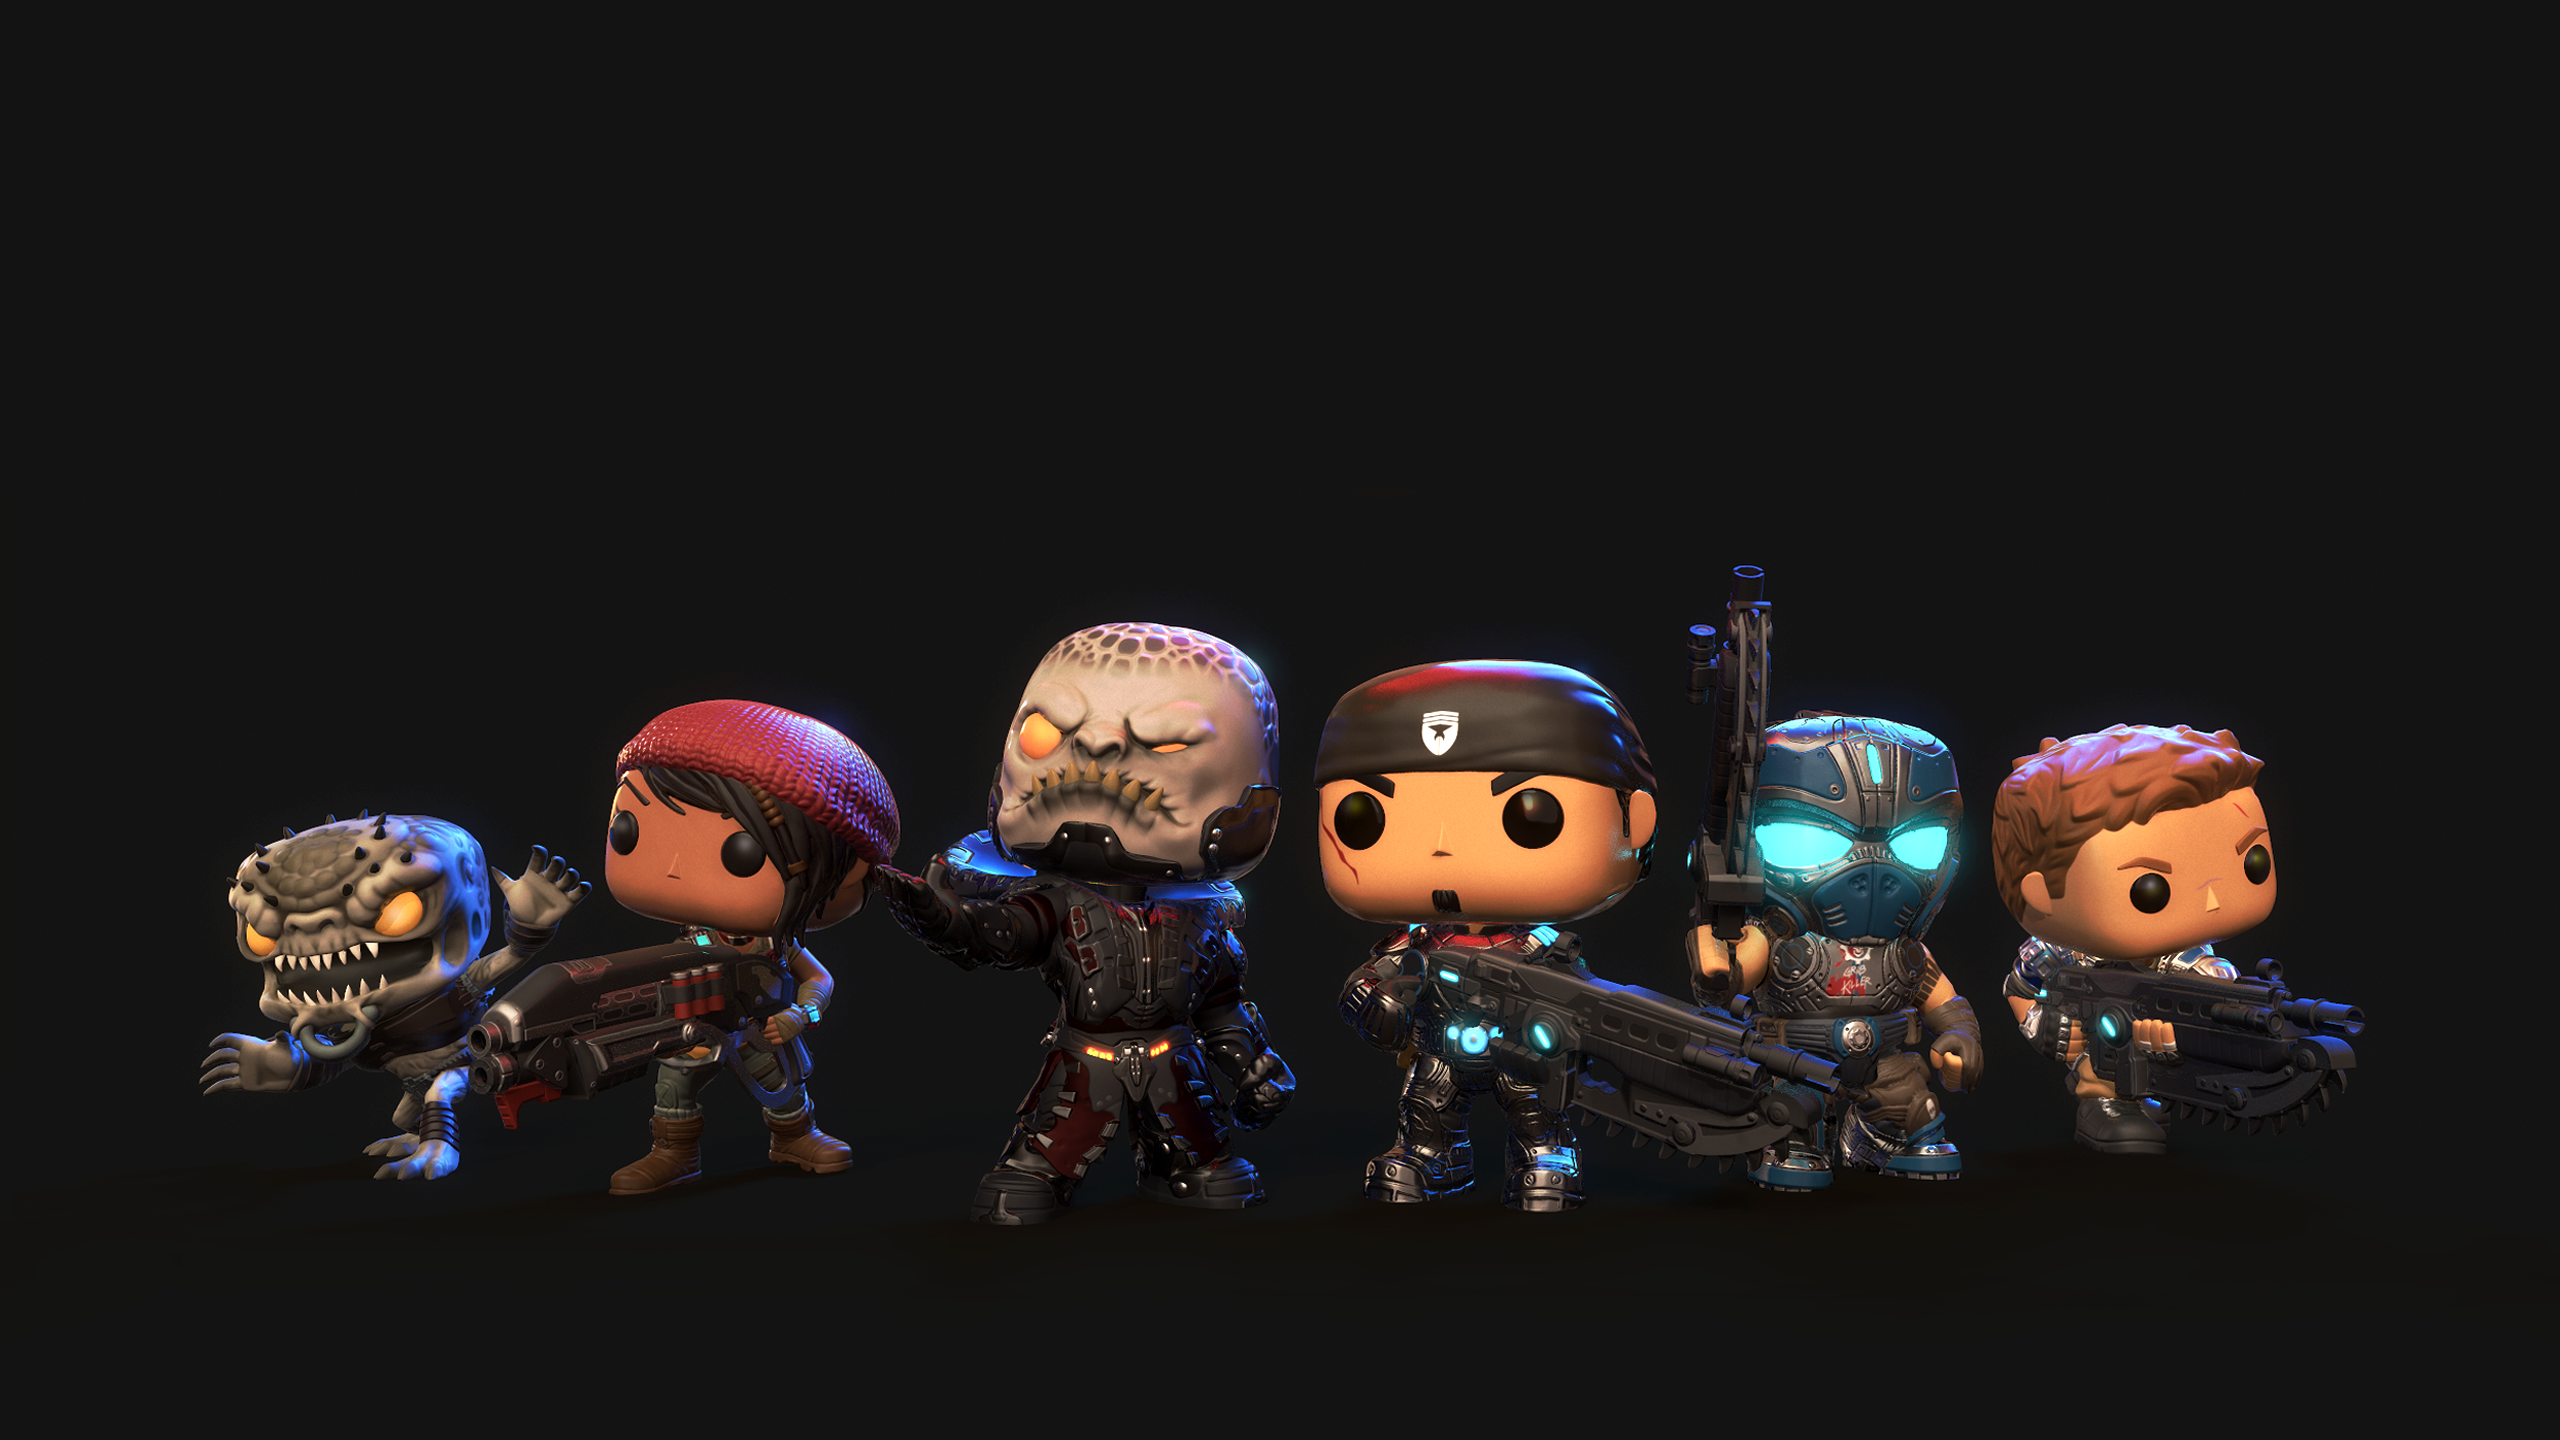 Gears Of War Meets Funko Pop In New Mobile Game Gears Of War Pop Game 821523 Hd Wallpaper Backgrounds Download